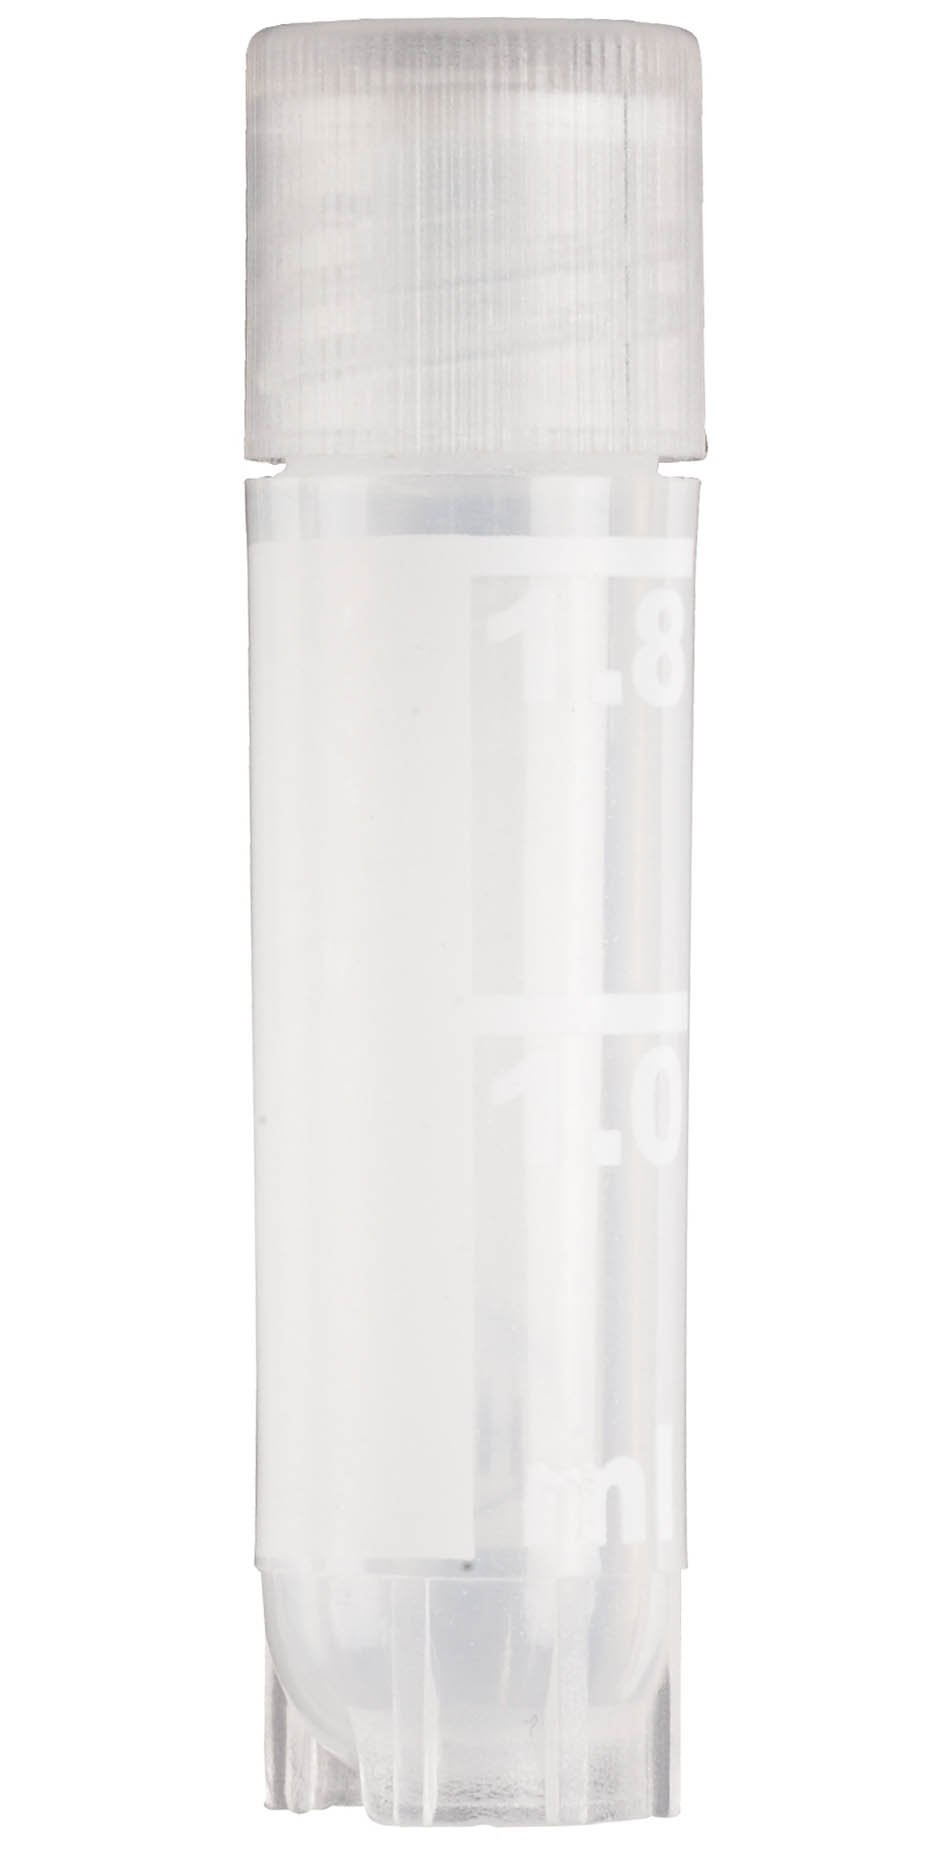 True North Cryogenic Sample Vial 2.0 mL with Natural Lid